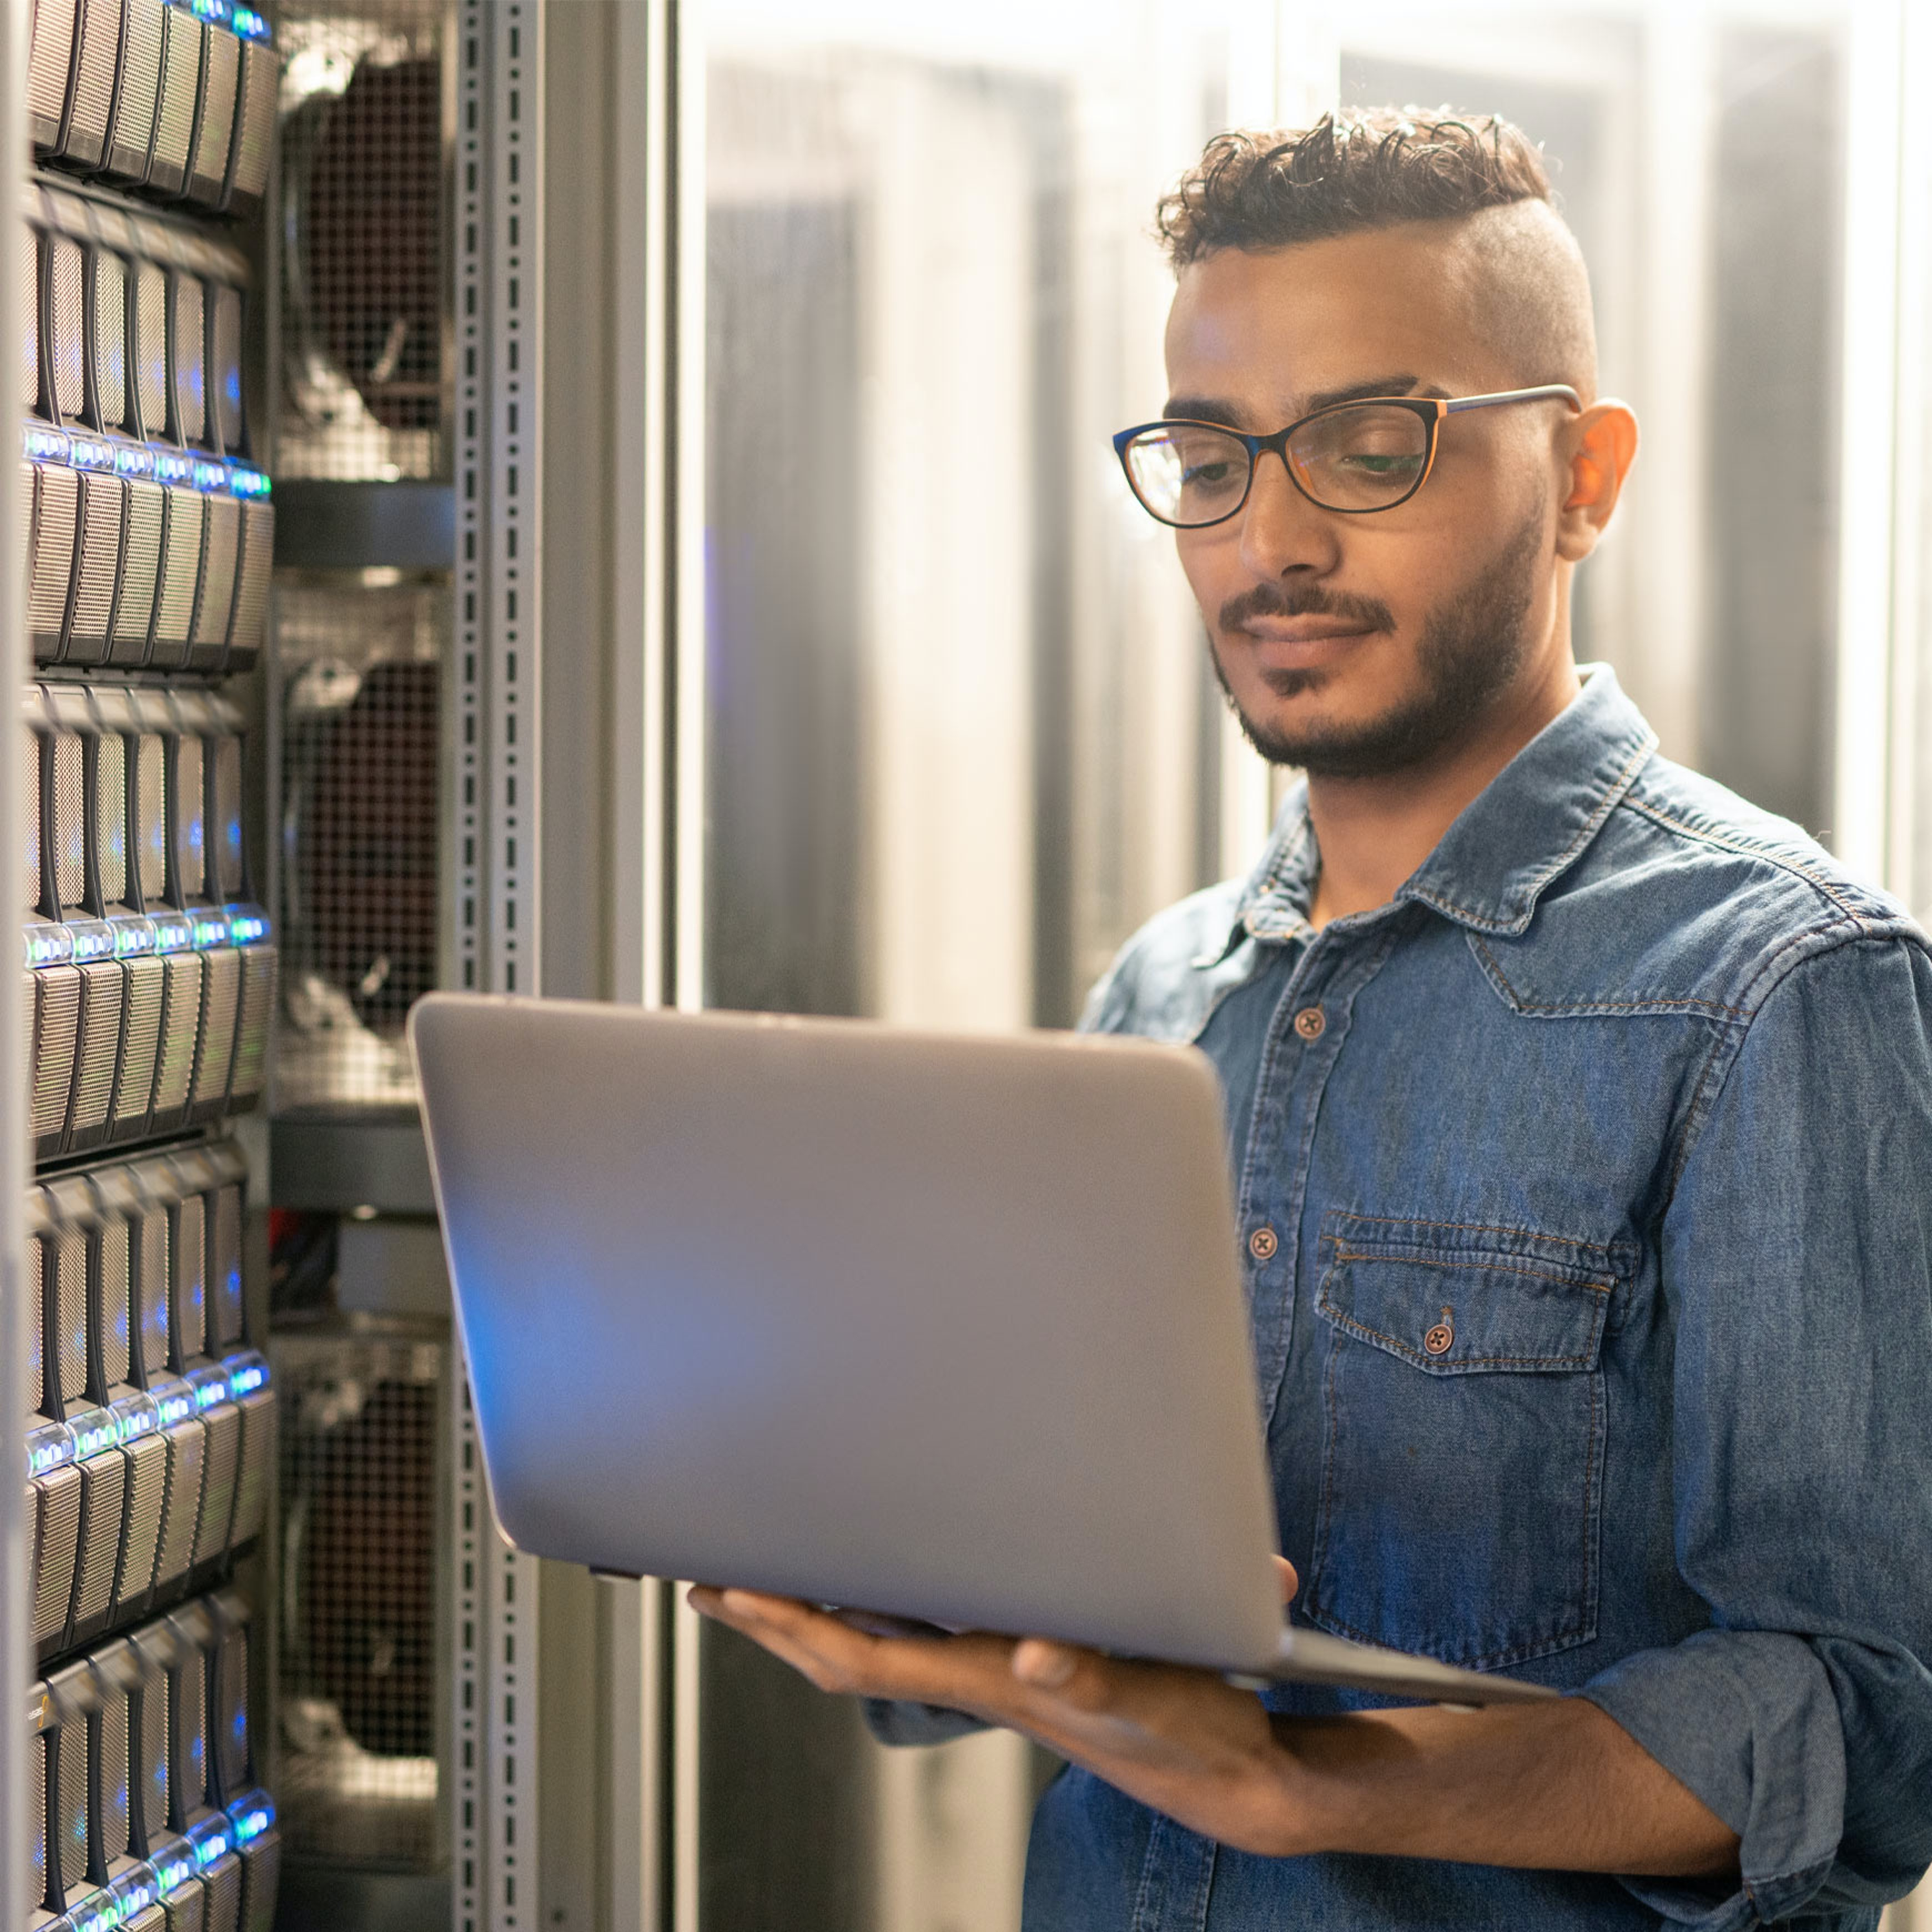 male employee uses laptop next to servers